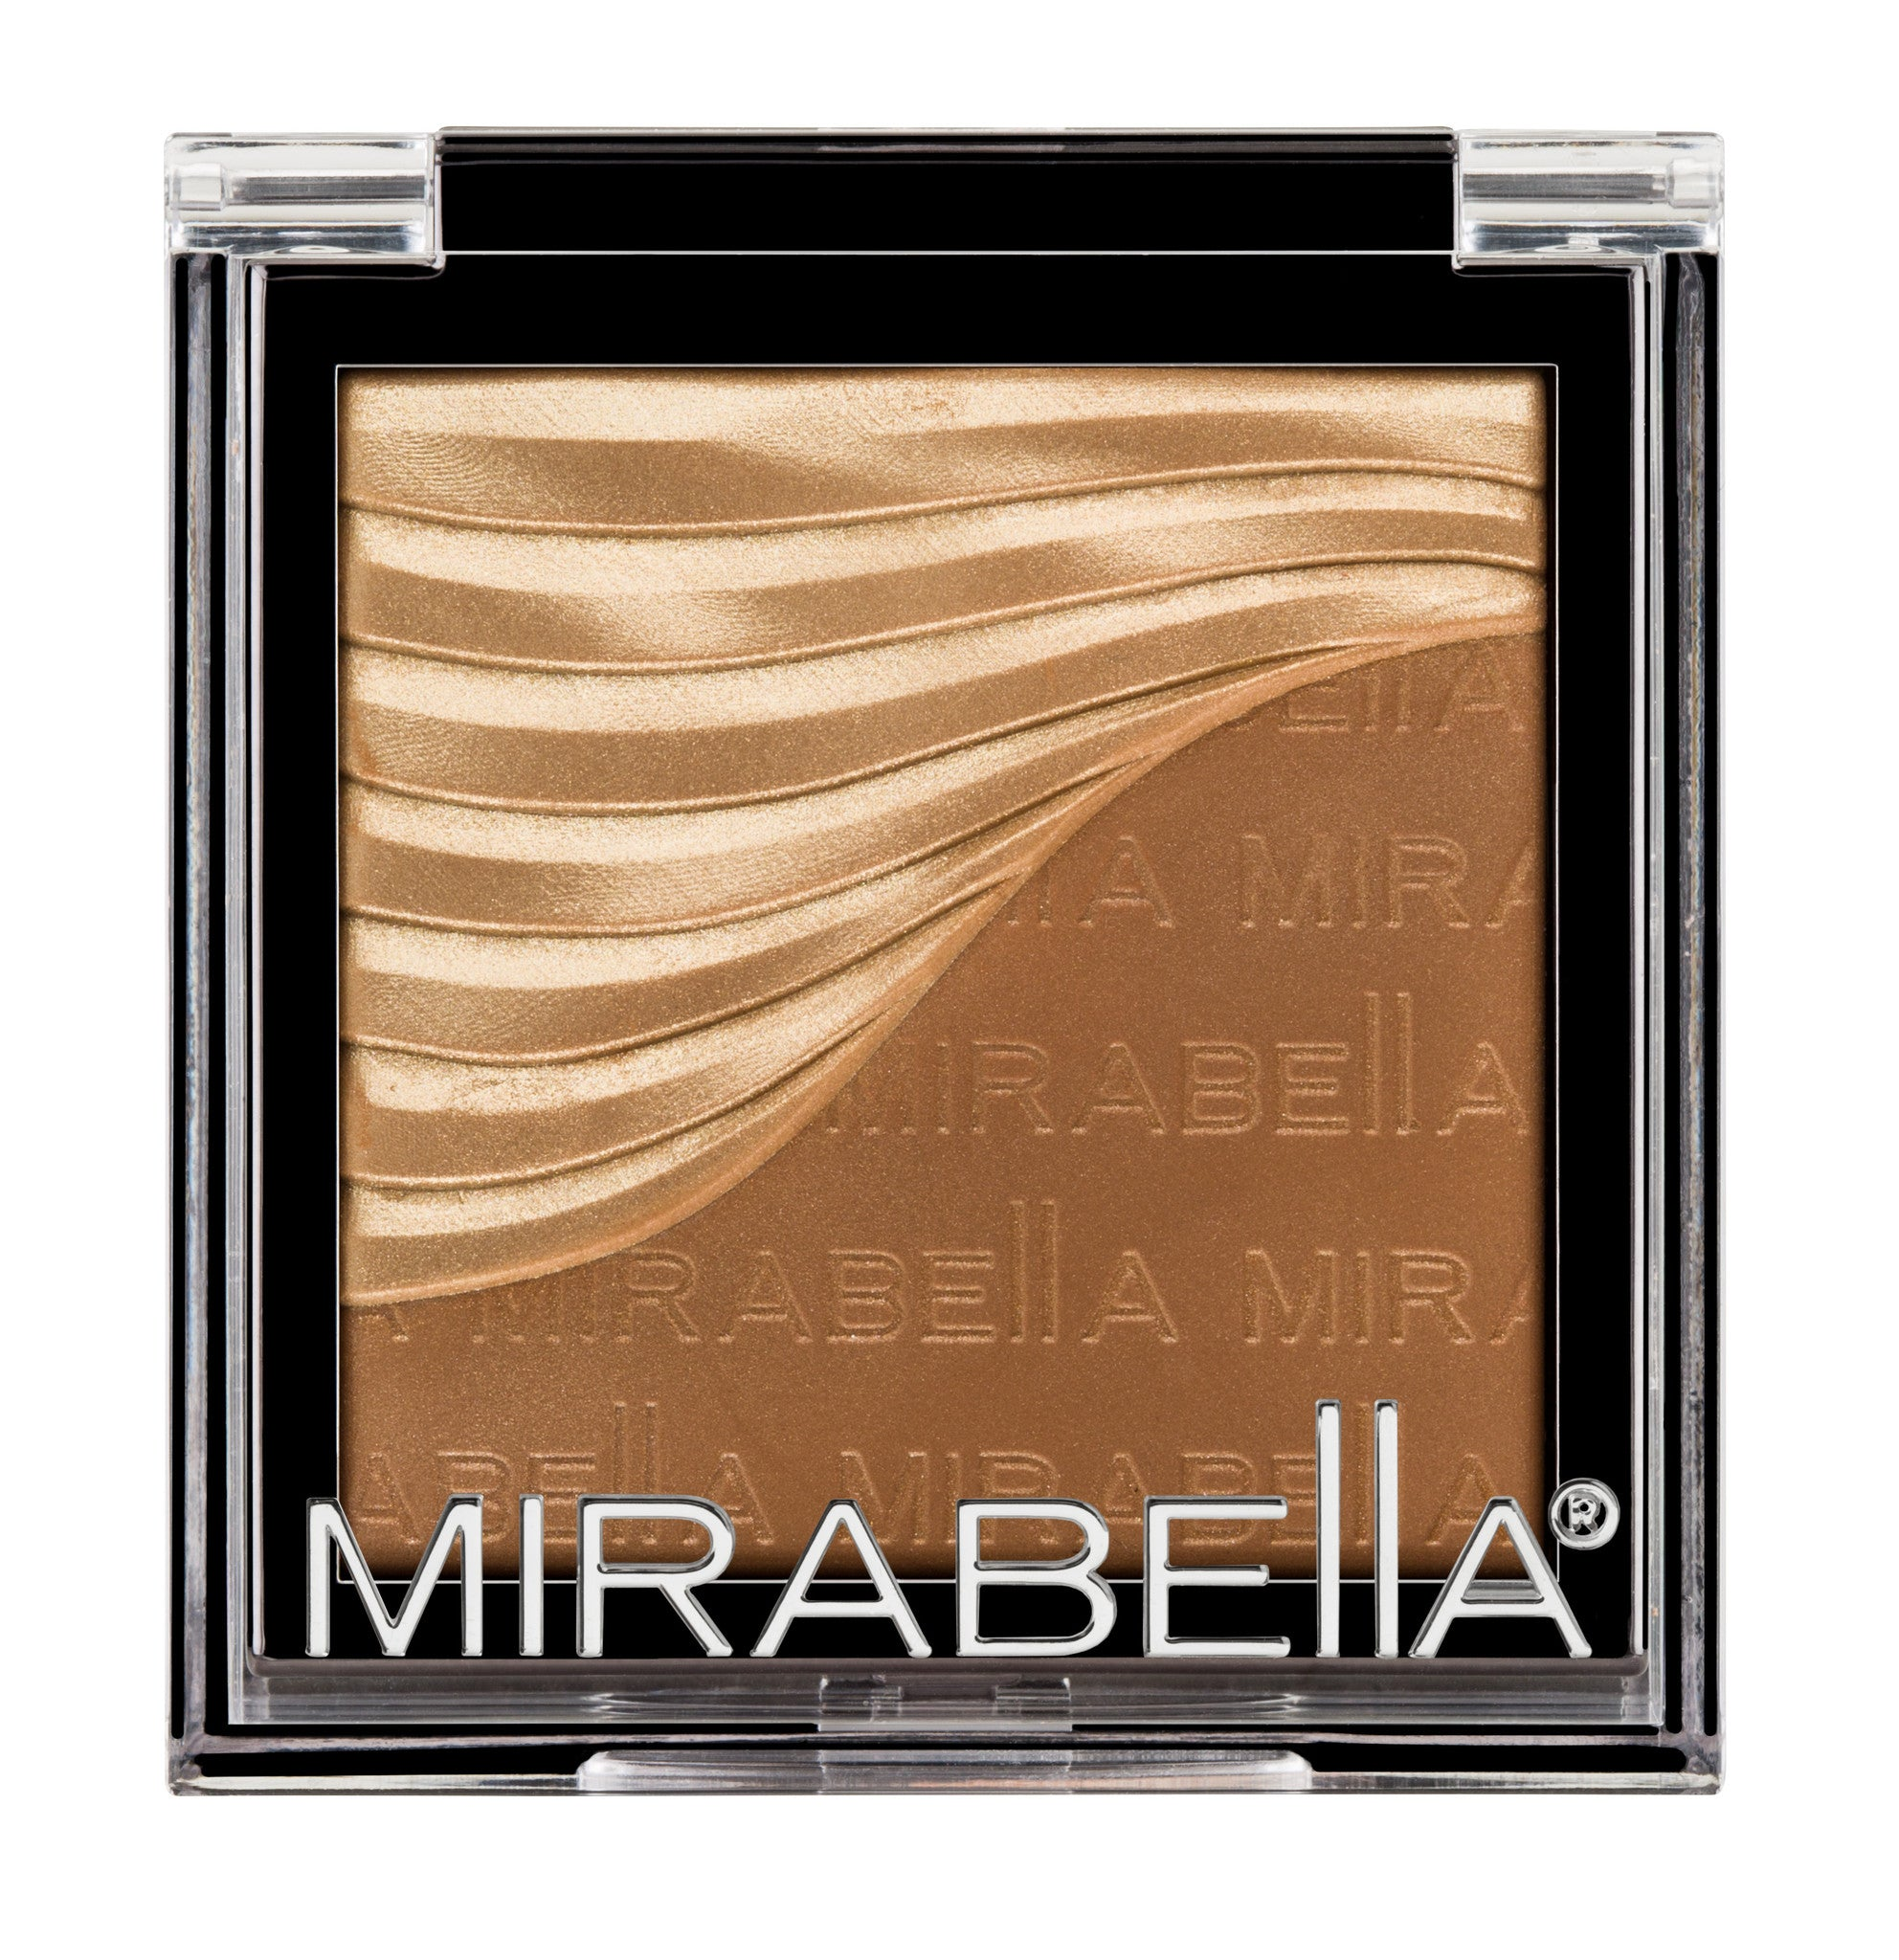 Sculpting Duo 72120  ${{amount_no_decimals}} ${{amount_no_decimals}} ${{amount_no_decimals}} Highlighter  Mirabella Beauty    Mirabella Beauty